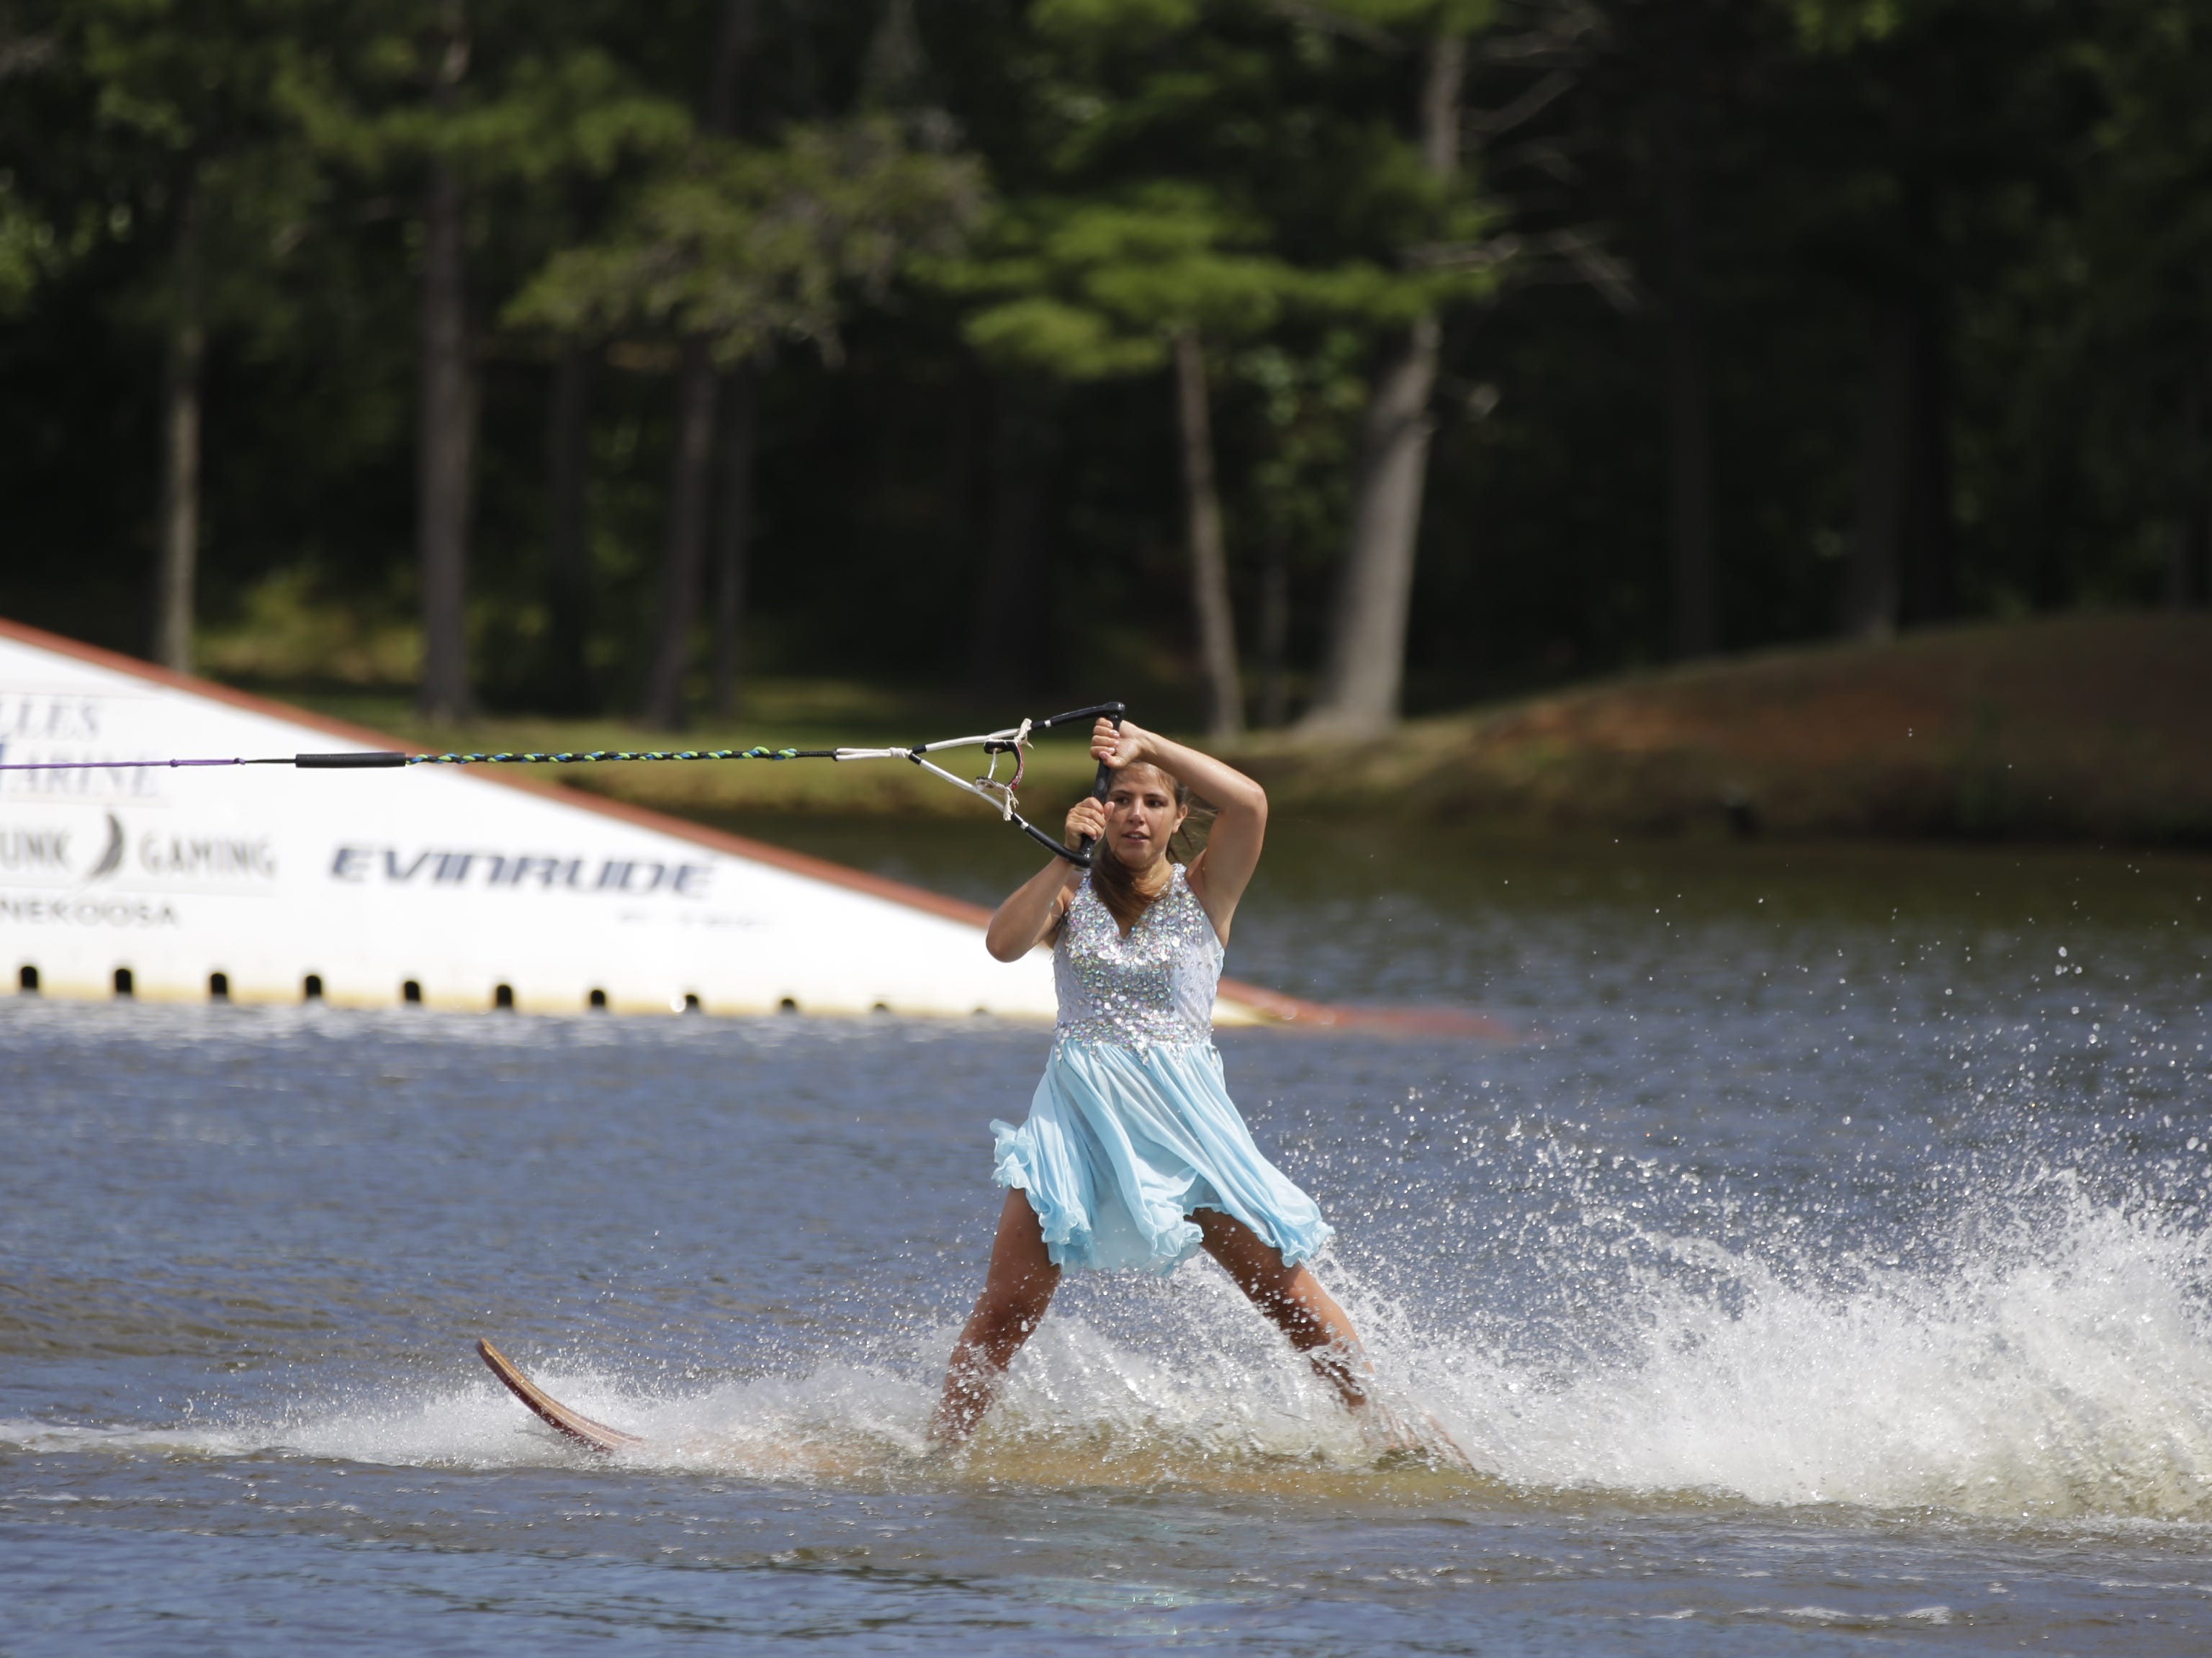 Shawna Broullire competes in the swivel category during the Wisconsin State Water Ski Show Championships on Lake Wazeecha in Kellner Thursday, July 19, 2018.